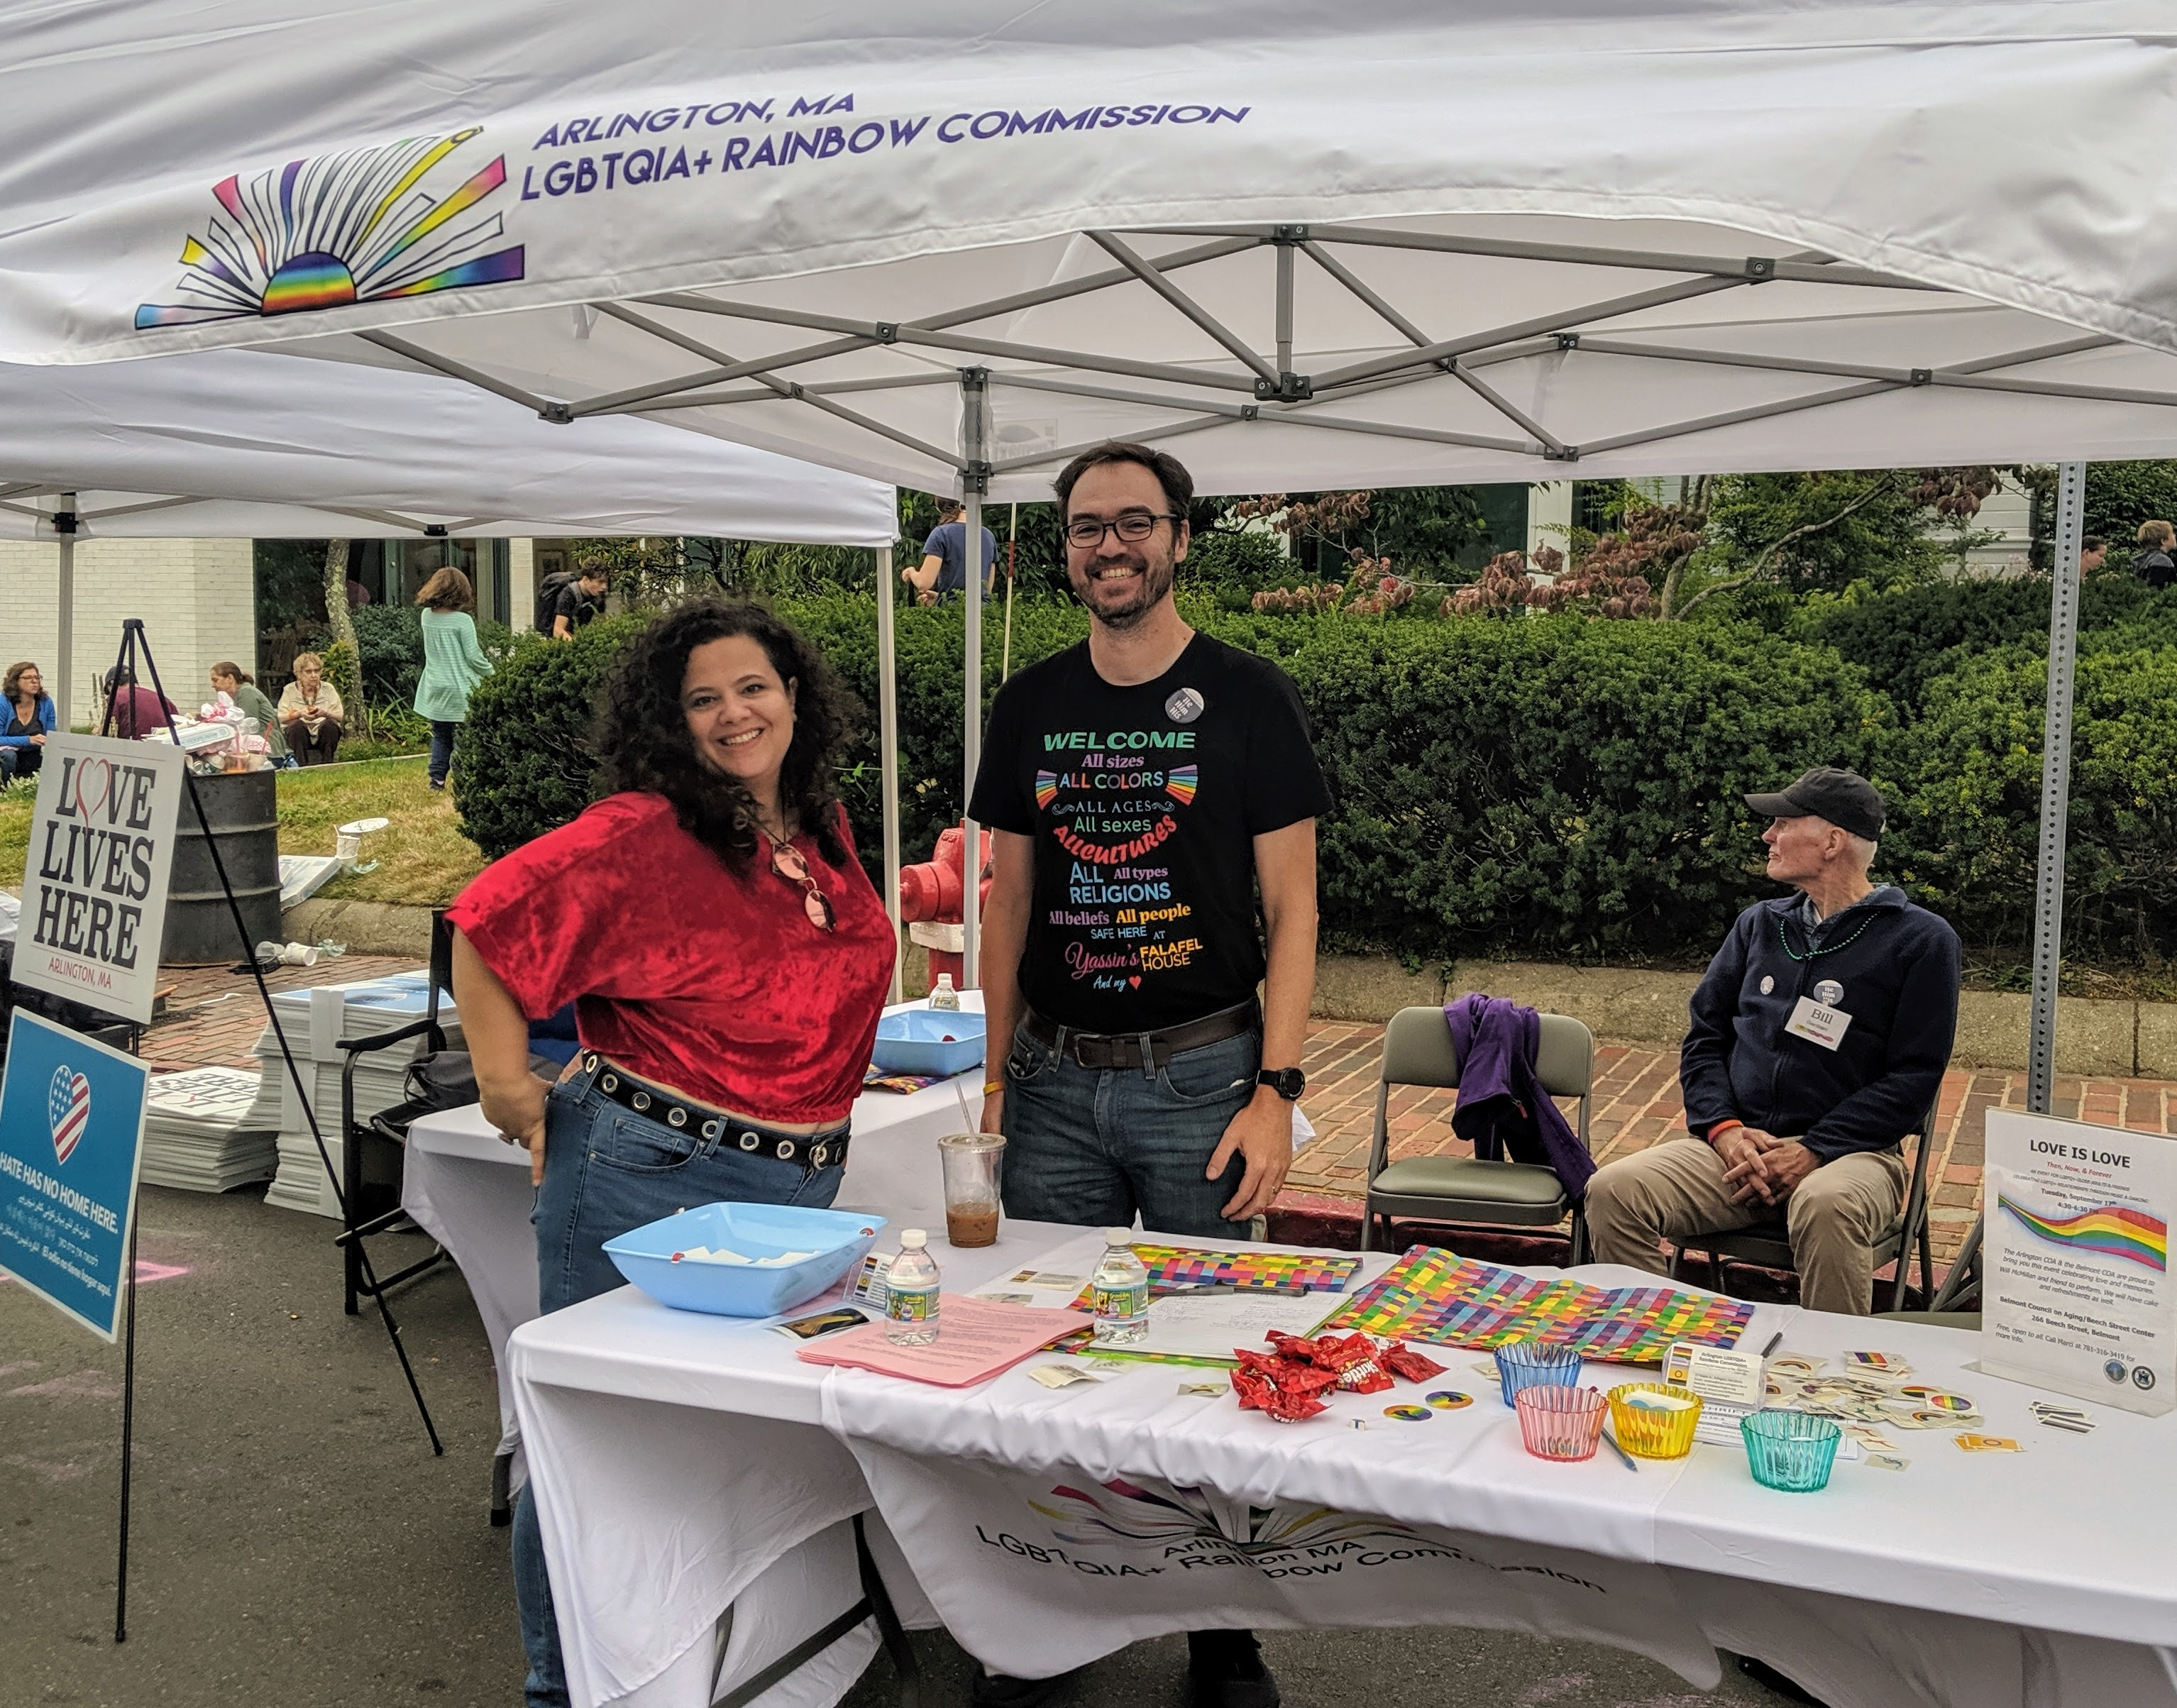 Volunteers and Commissioner Bill Gardiner at the Rainbow Commission's Town Day booth, with a table of Skittles, rainbow stickers, unicorn temp tattoos, and other giveaways